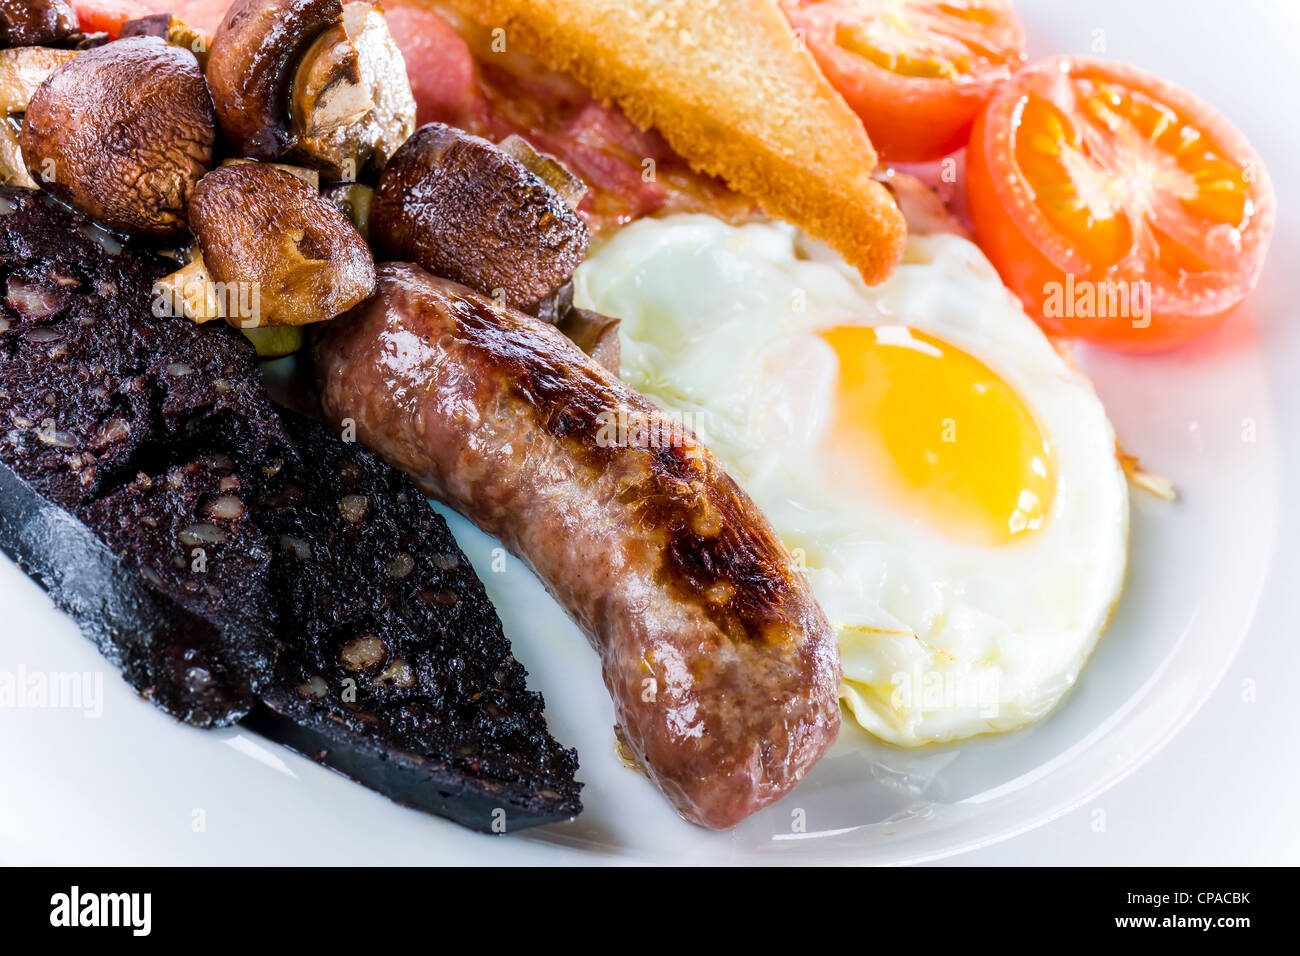 Full English Breakfast - Stock Image